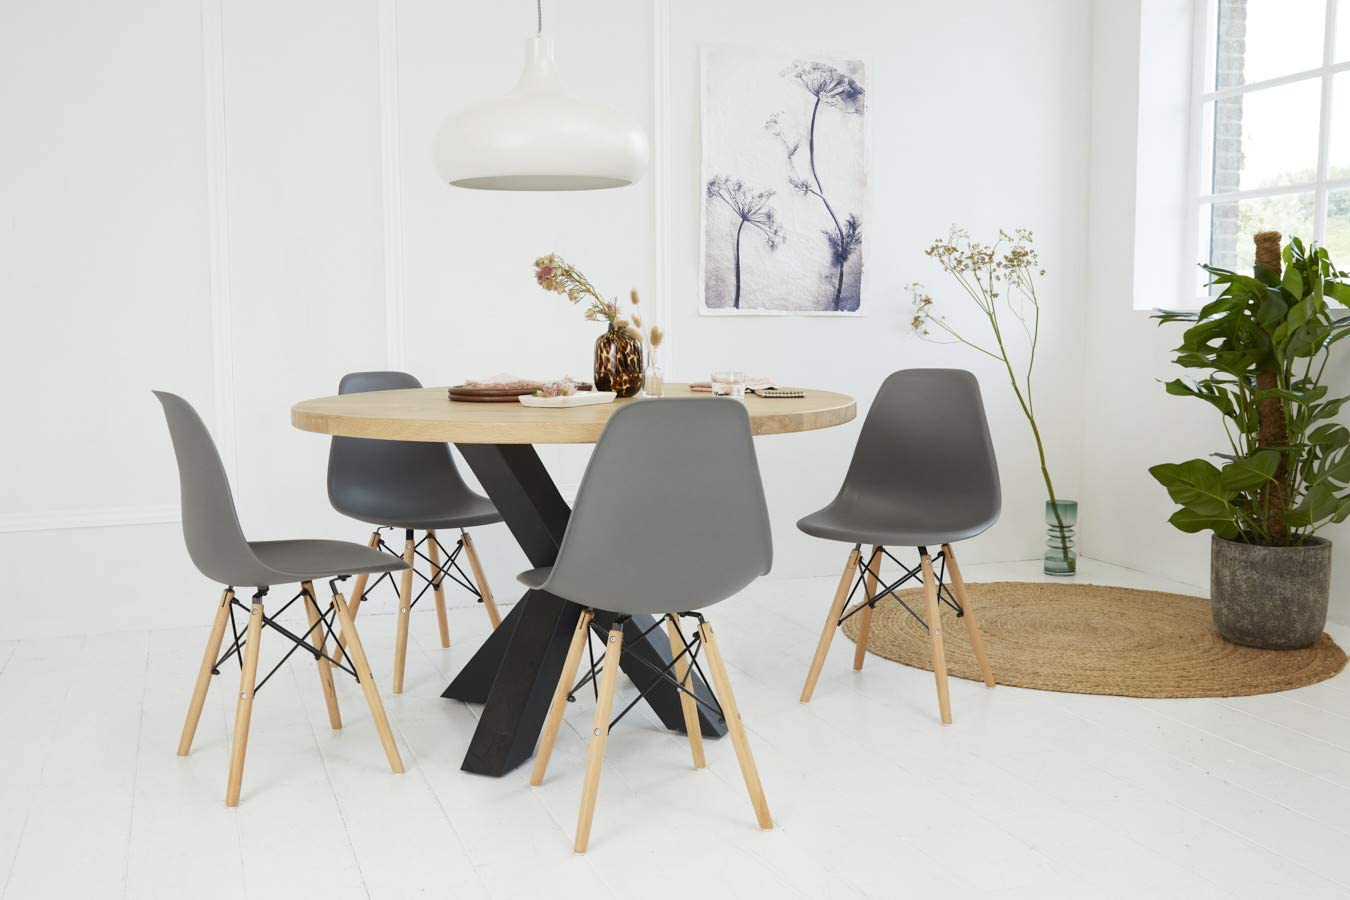 LIFA LIVING black modern dining chair set of 4, home office chair with back support, comfortable desk chair, wooden chairs, 82x46x47 cm, max 220 lb. Grey